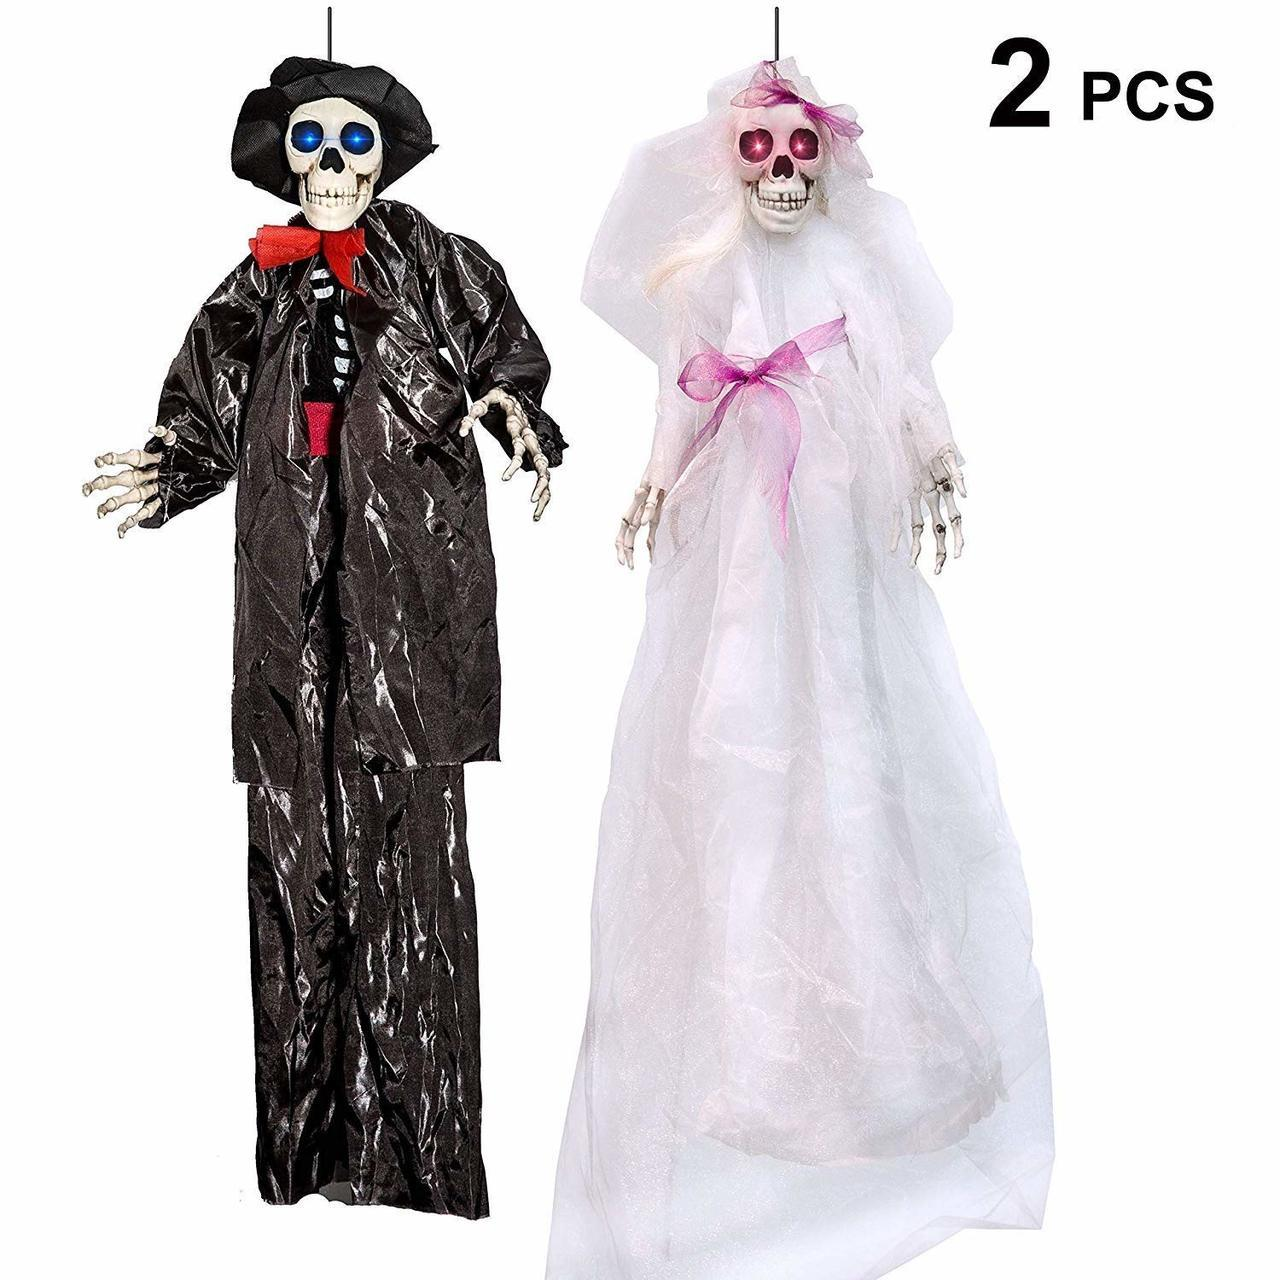 Hanging Bride and Groom Skeleton, Set of 2